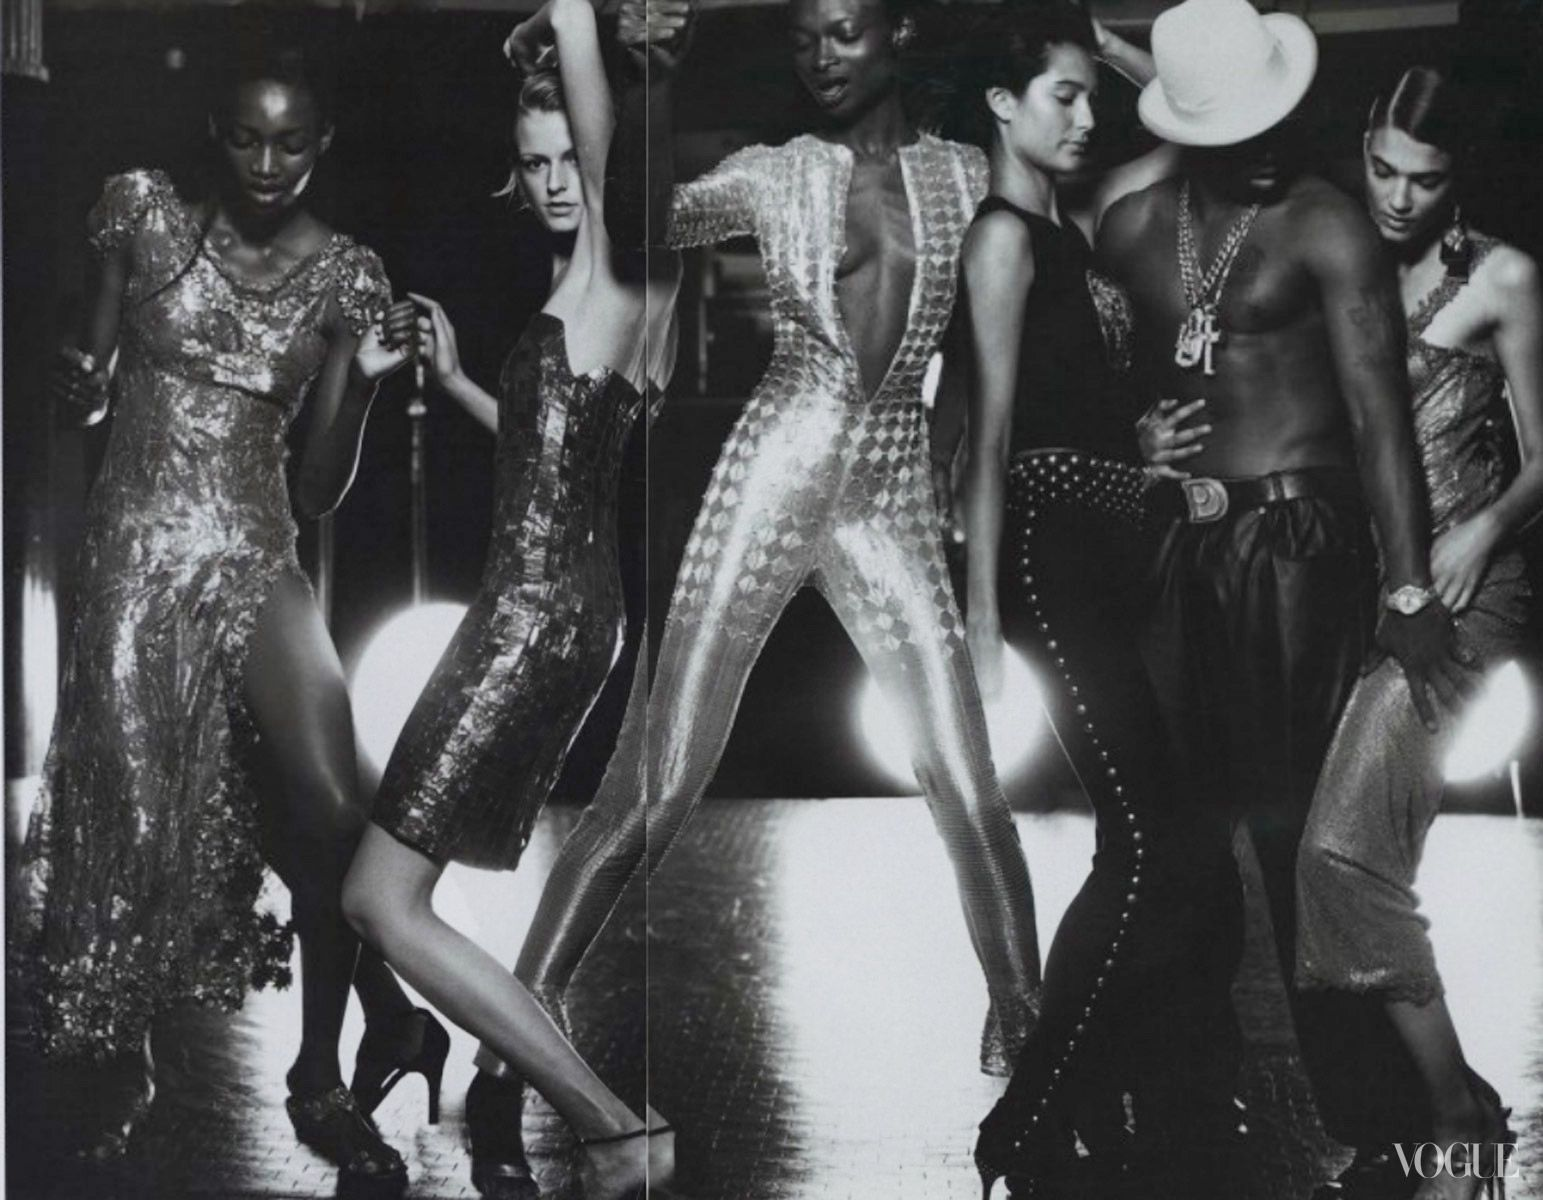 Oluchi, Debra Shaw and others  Photographed by Annie Leibovitz for  Vogue, October 1999